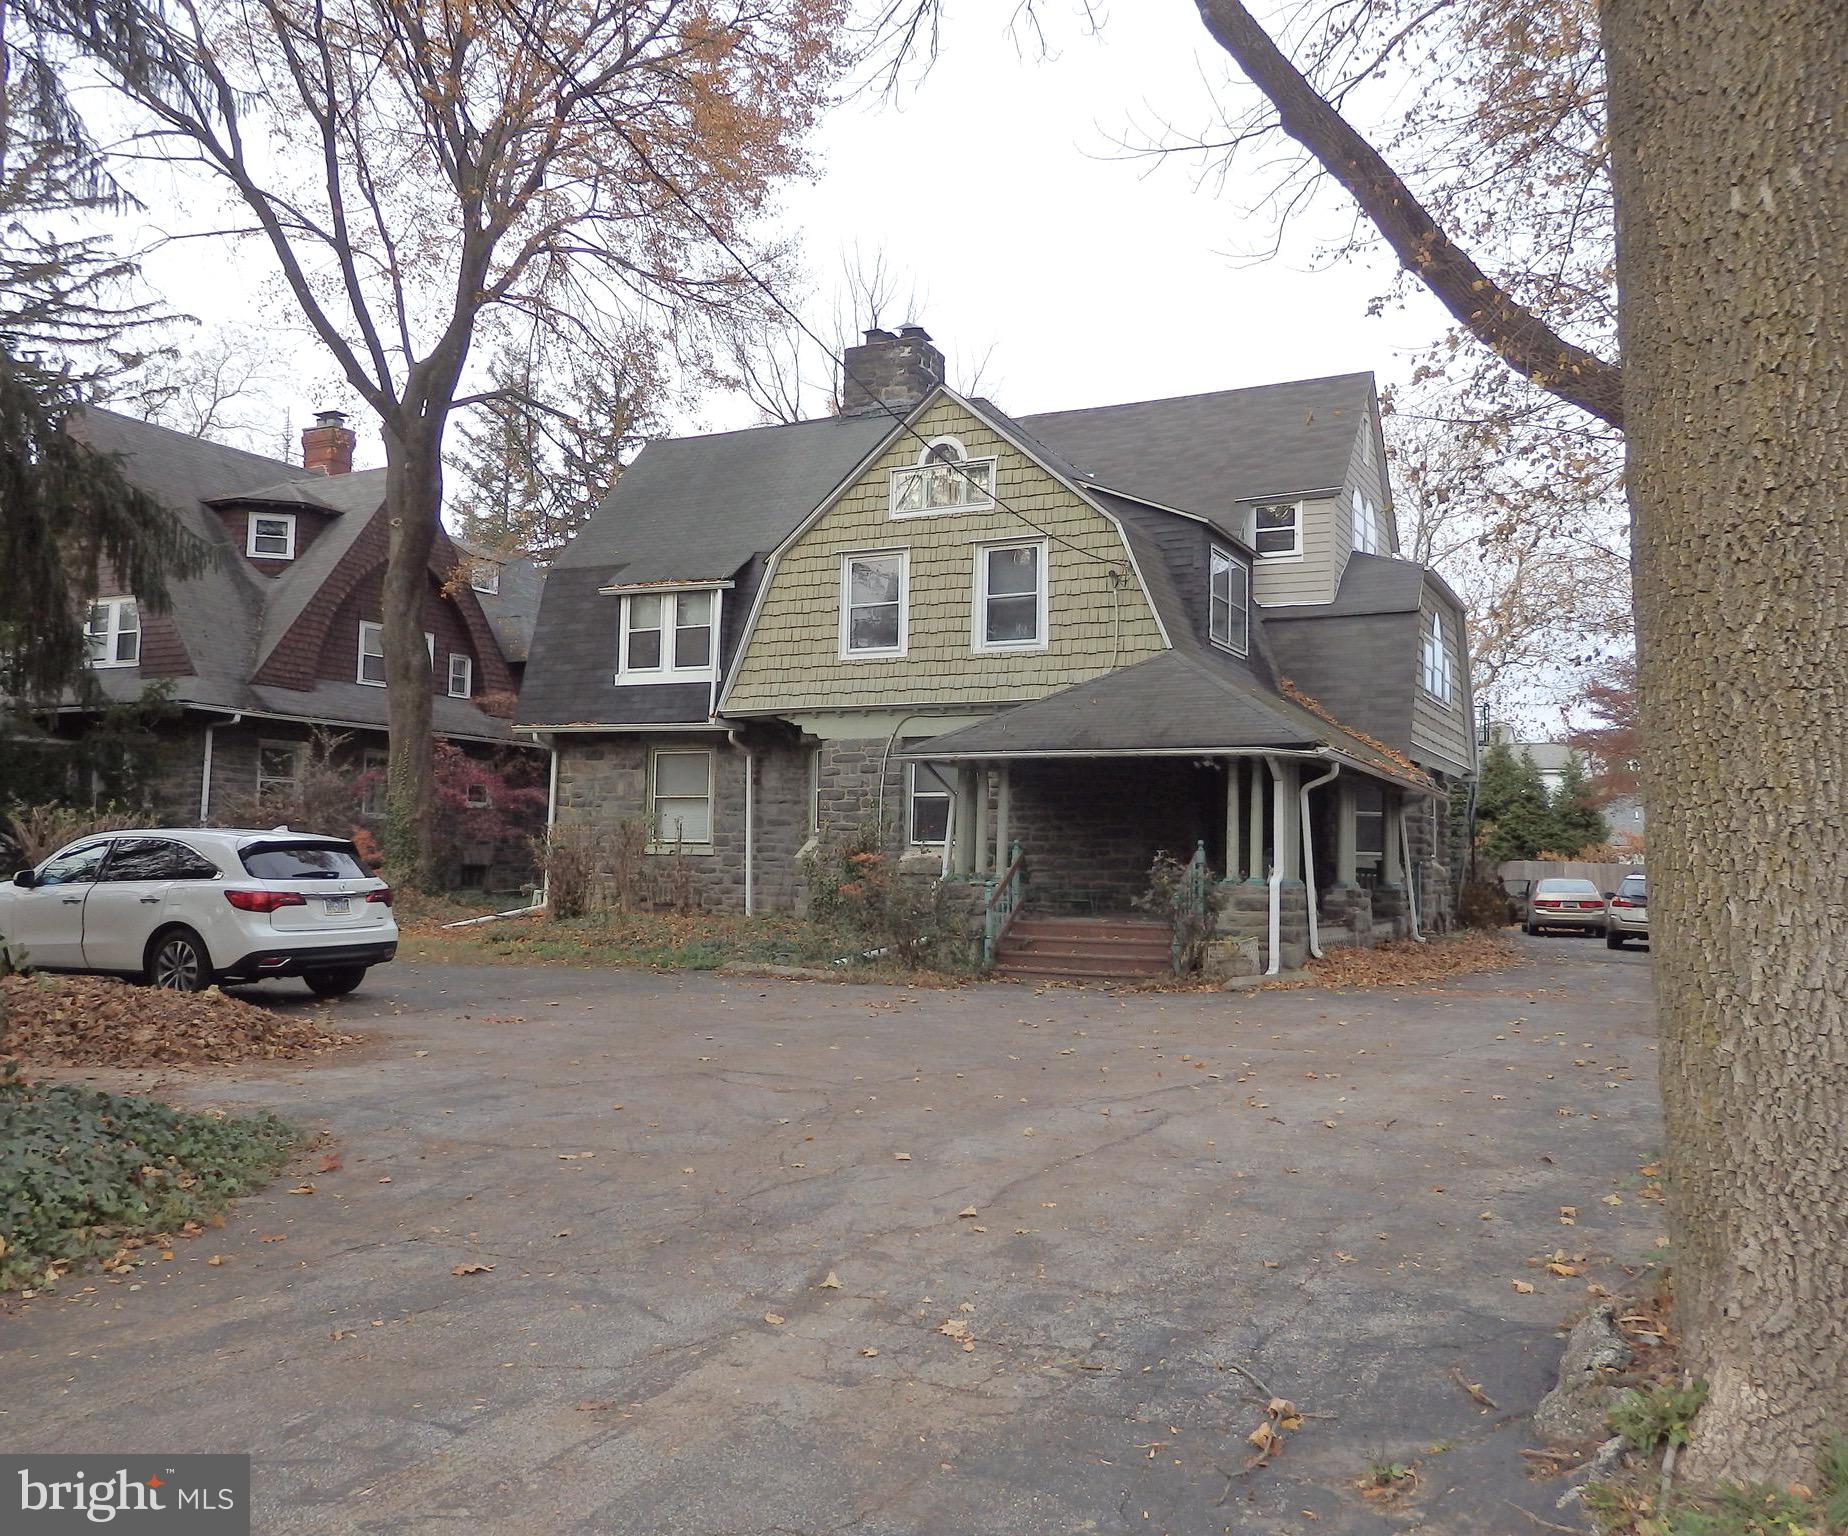 519 W MONTGOMERY AVENUE, HAVERFORD, PA 19041